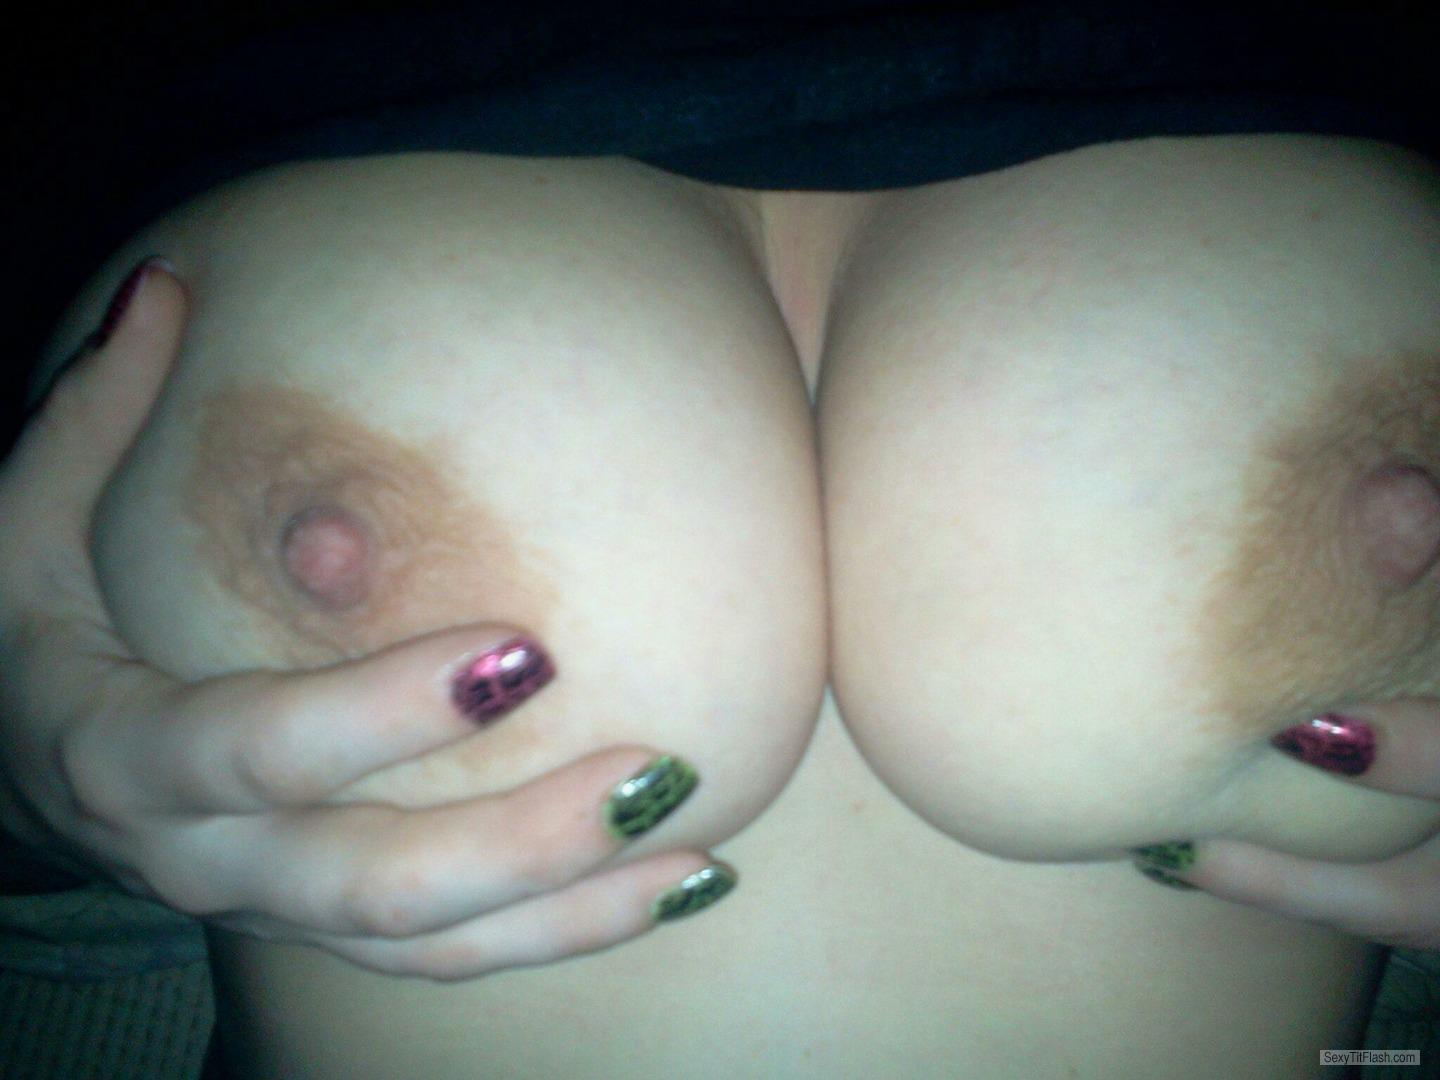 My Very big Tits Lig Ol Bittys